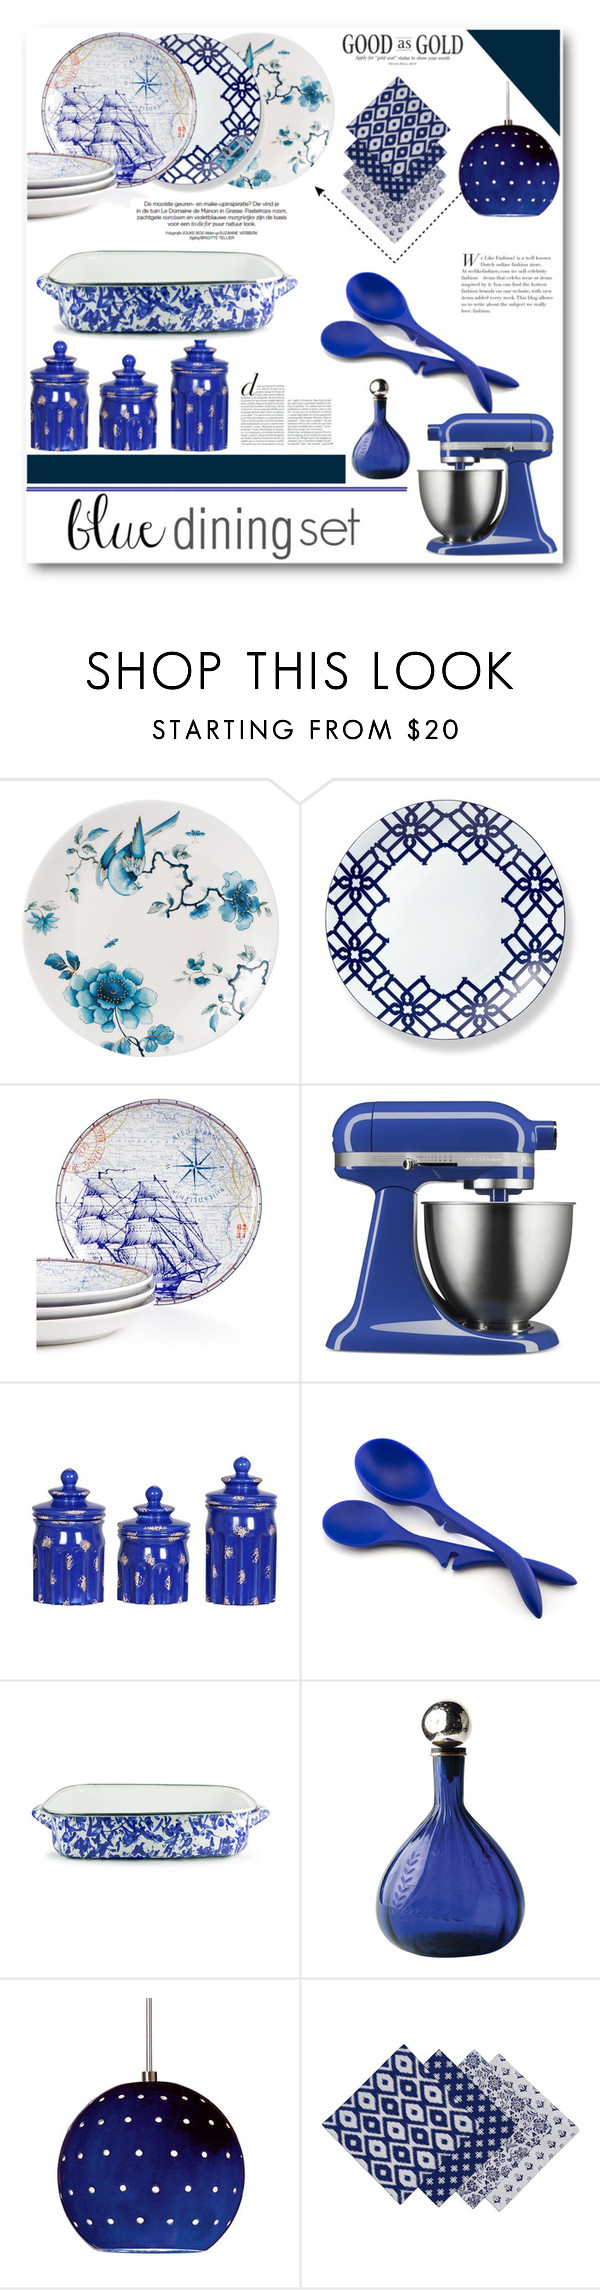 """""""Blue dining set"""" by patria ❤ liked on Polyvore featuring interior, interiors, interior design, home, home decor, interior decorating, Wedgwood, 222 Fifth, KitchenAid and Rachael Ray"""